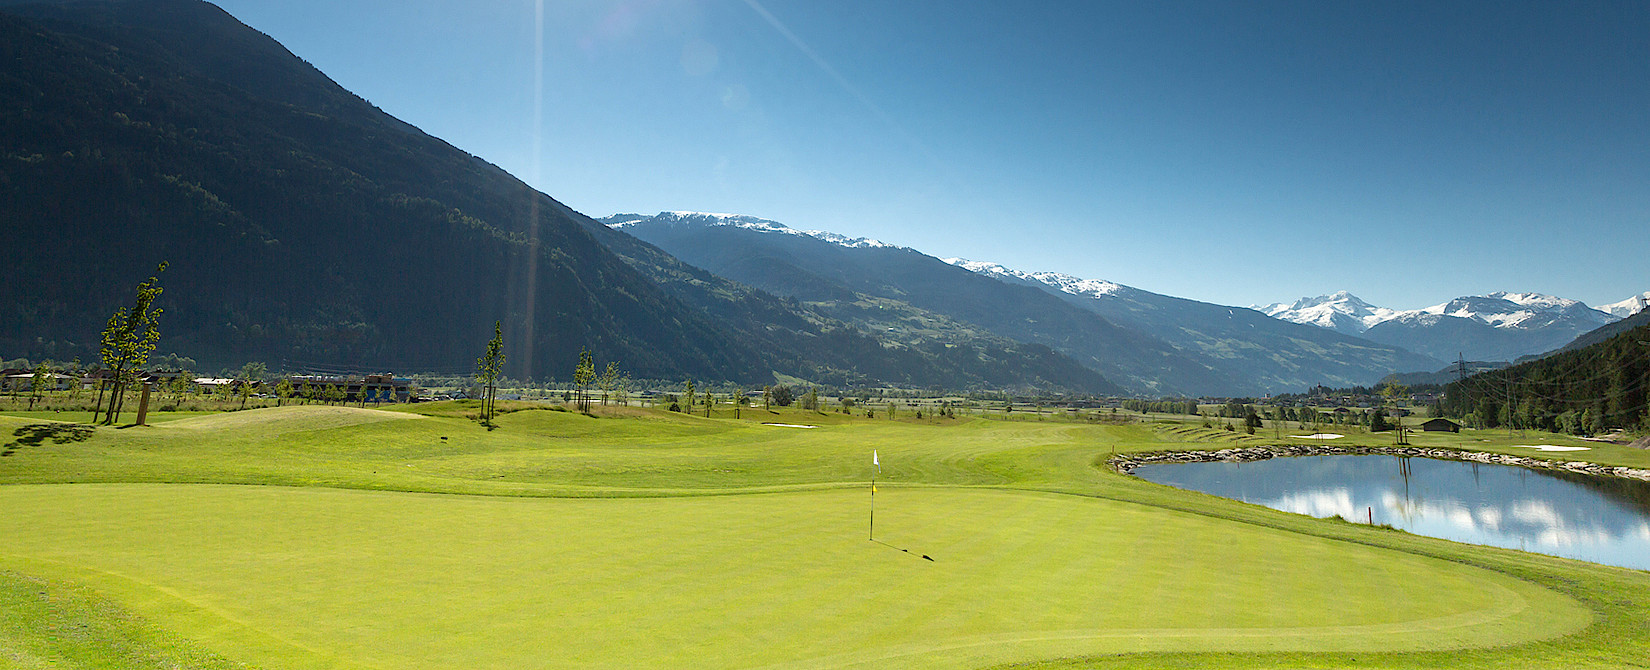 Golfing hotel in the Zillertal Valley